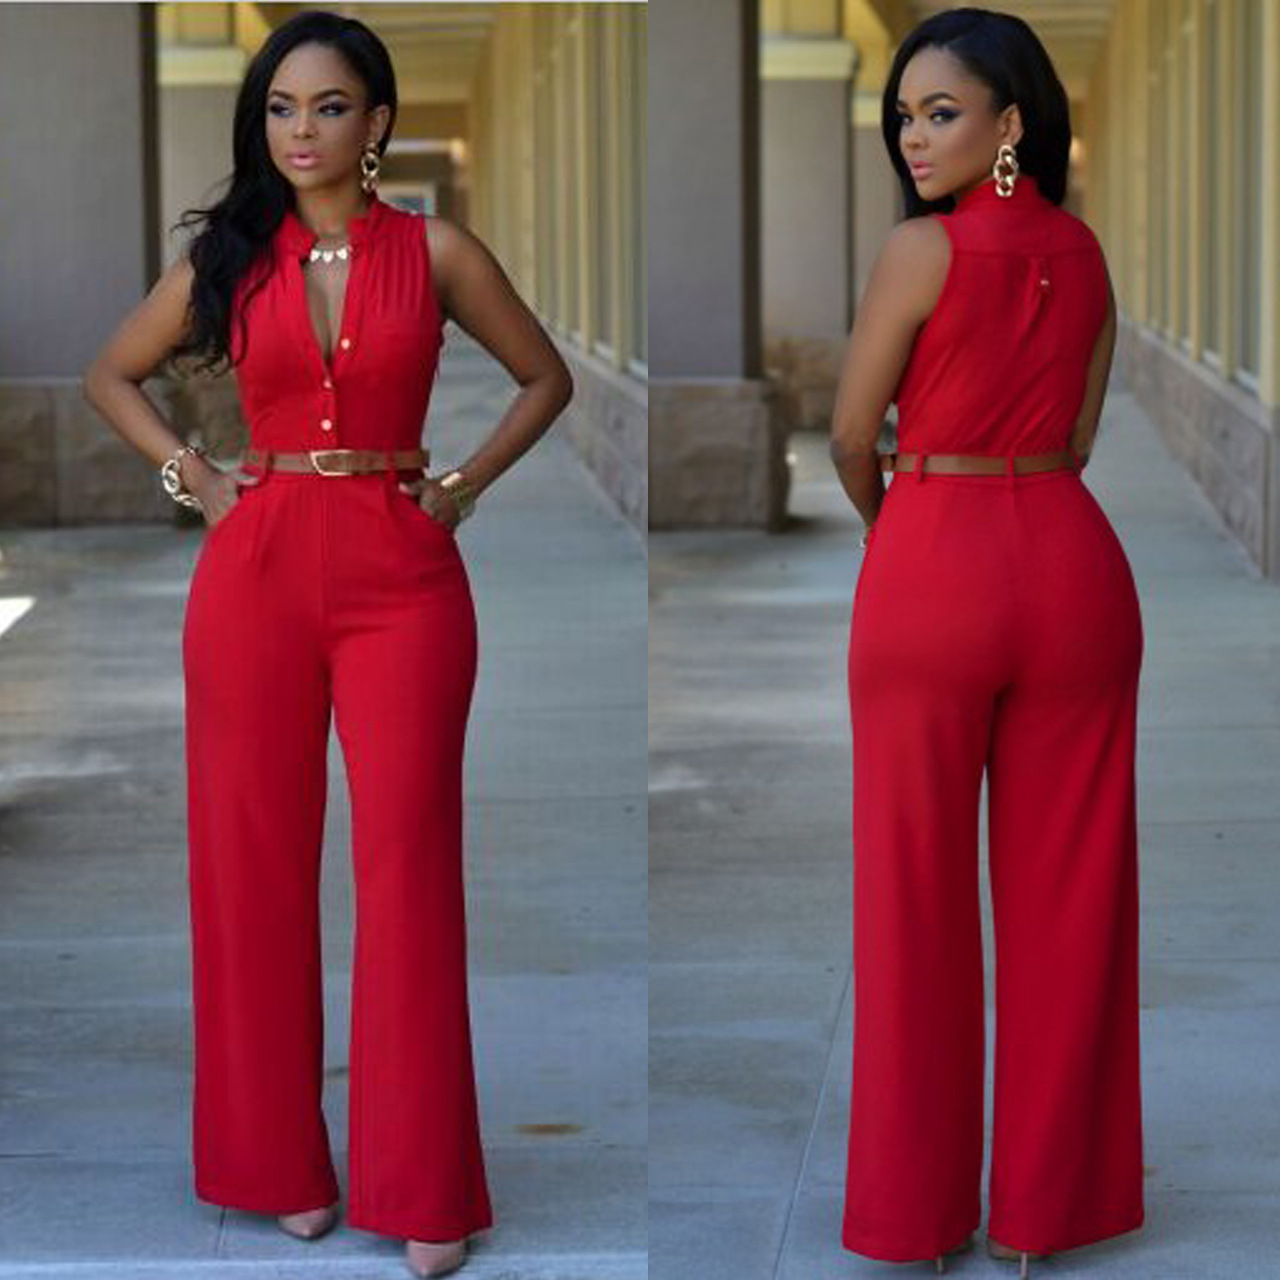 2017 Enteritos Mujer Jumpsuit Solid Top Fashion Polyester Straight Playsuit Color T-shirt Sleeveless Conjoined Pants Suit